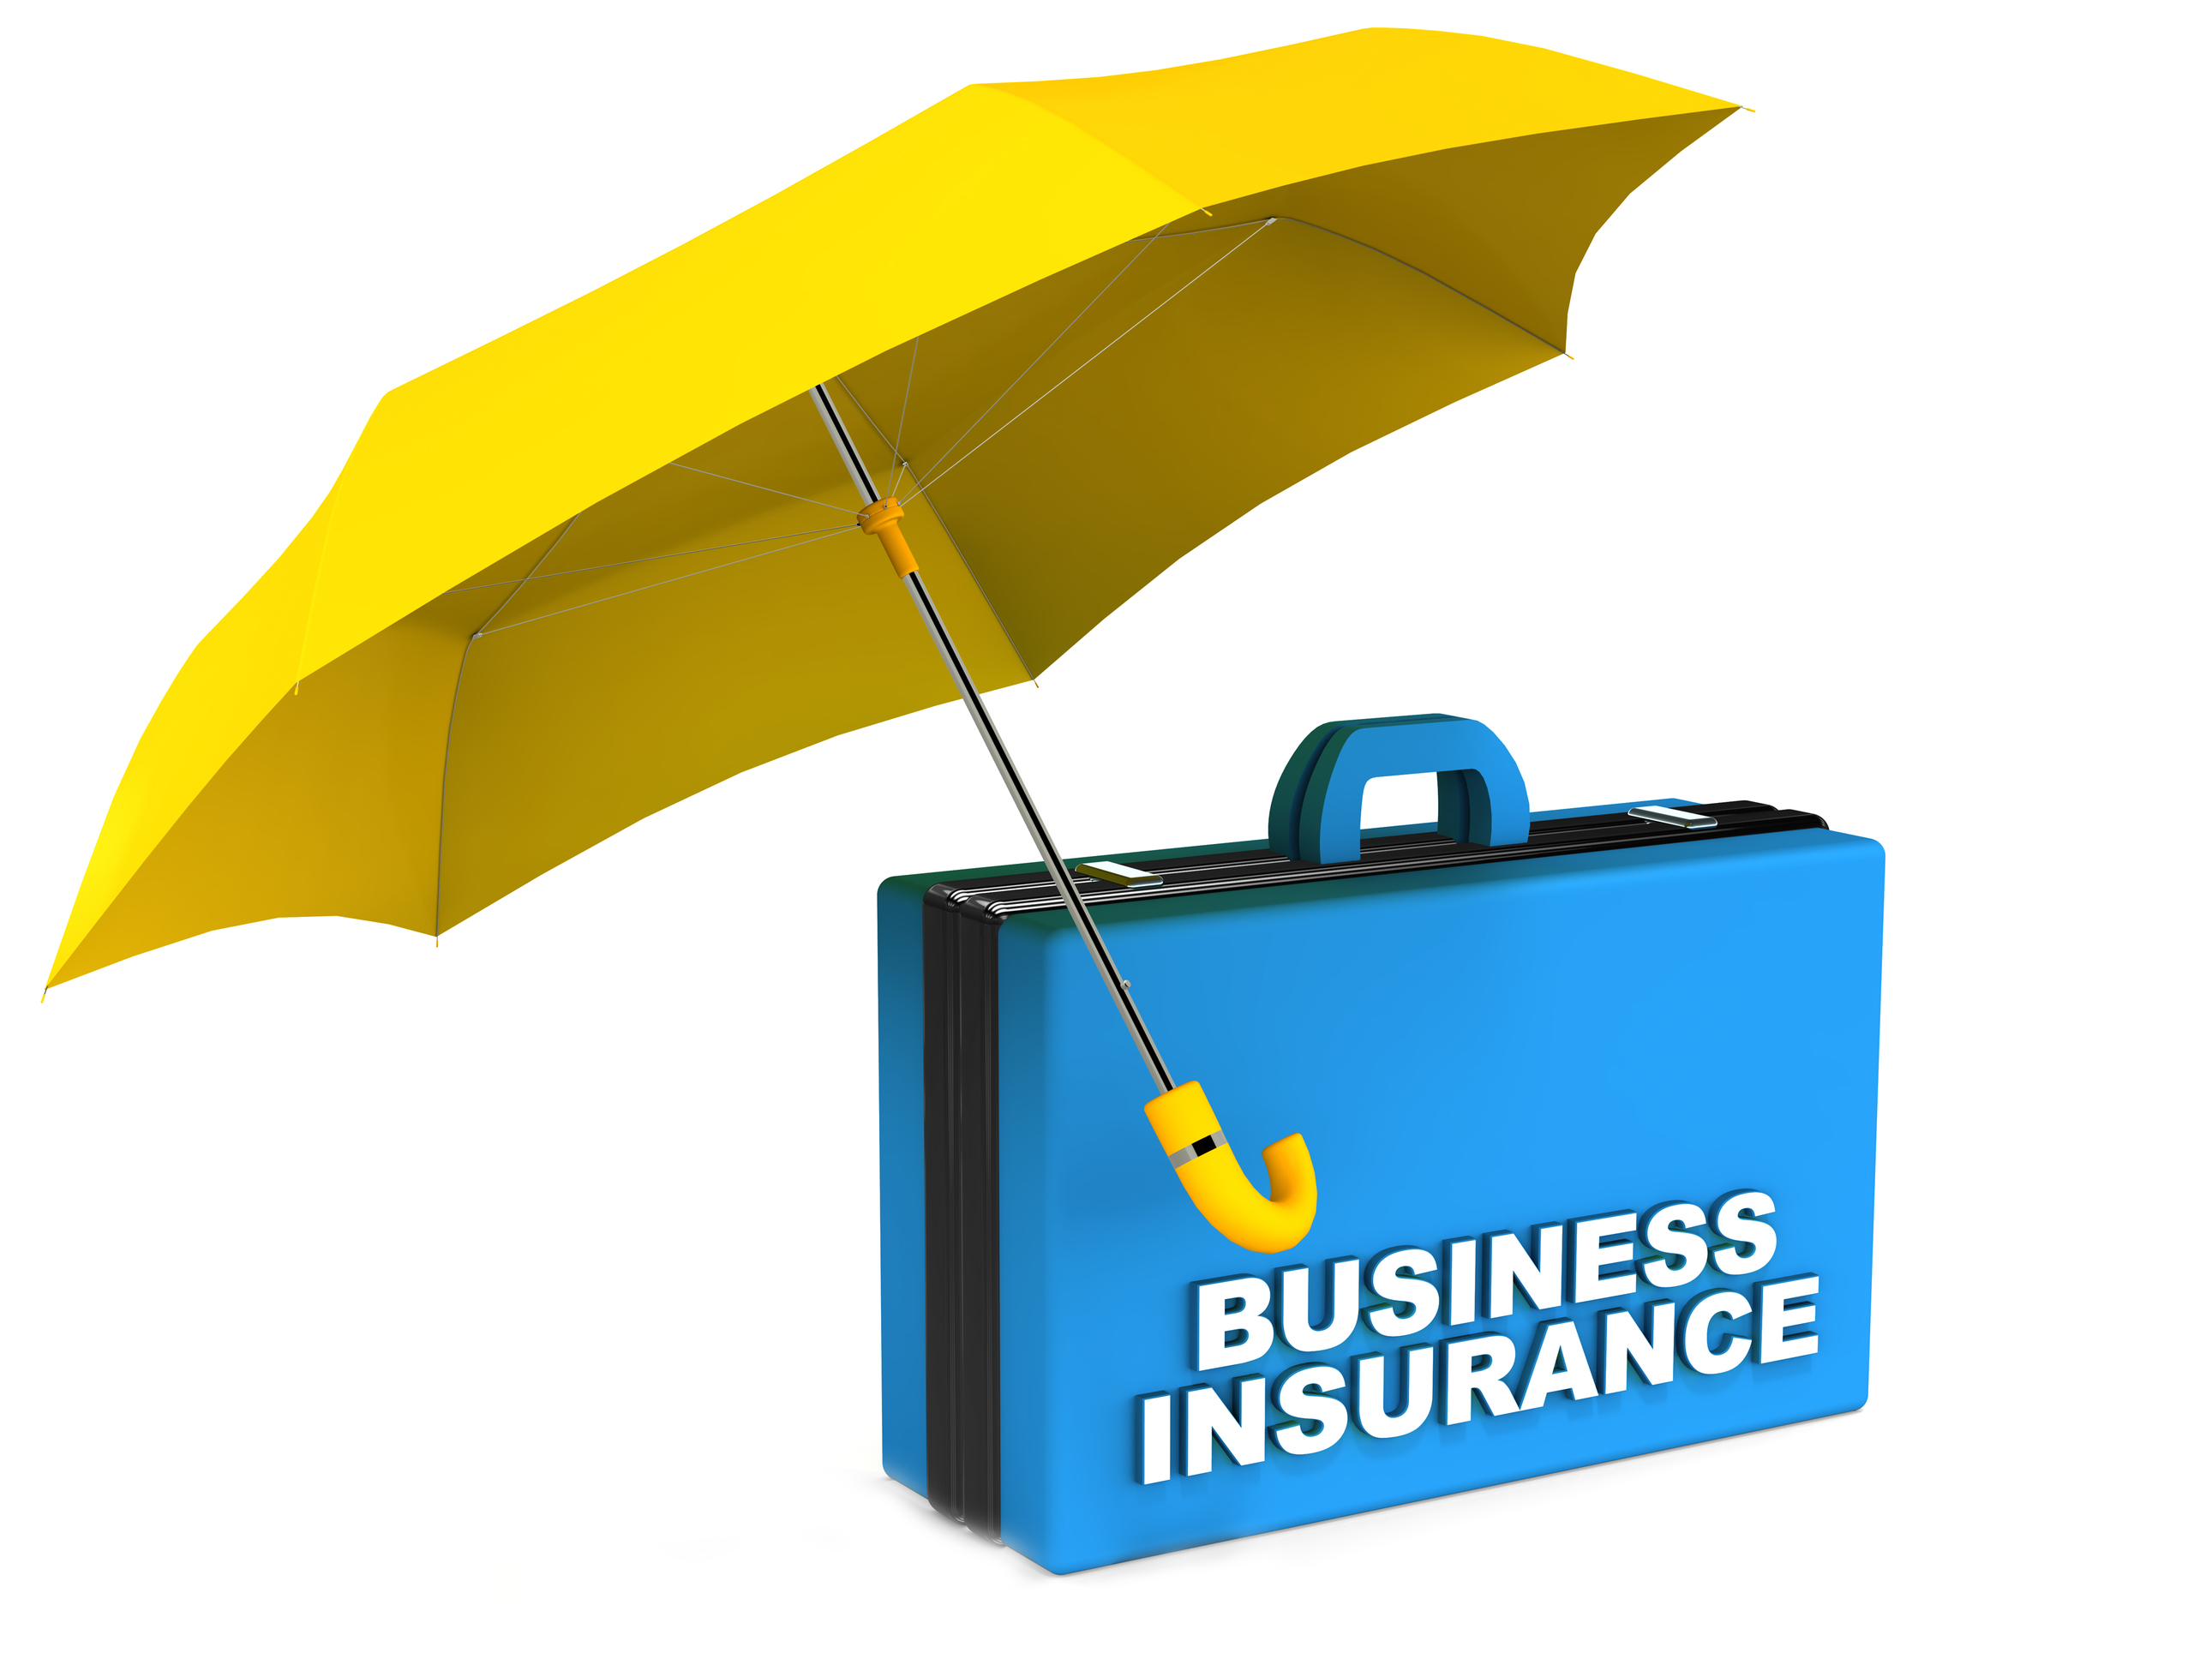 Choose Professional Indemnity Insurance to Ensure Smooth Business Operations